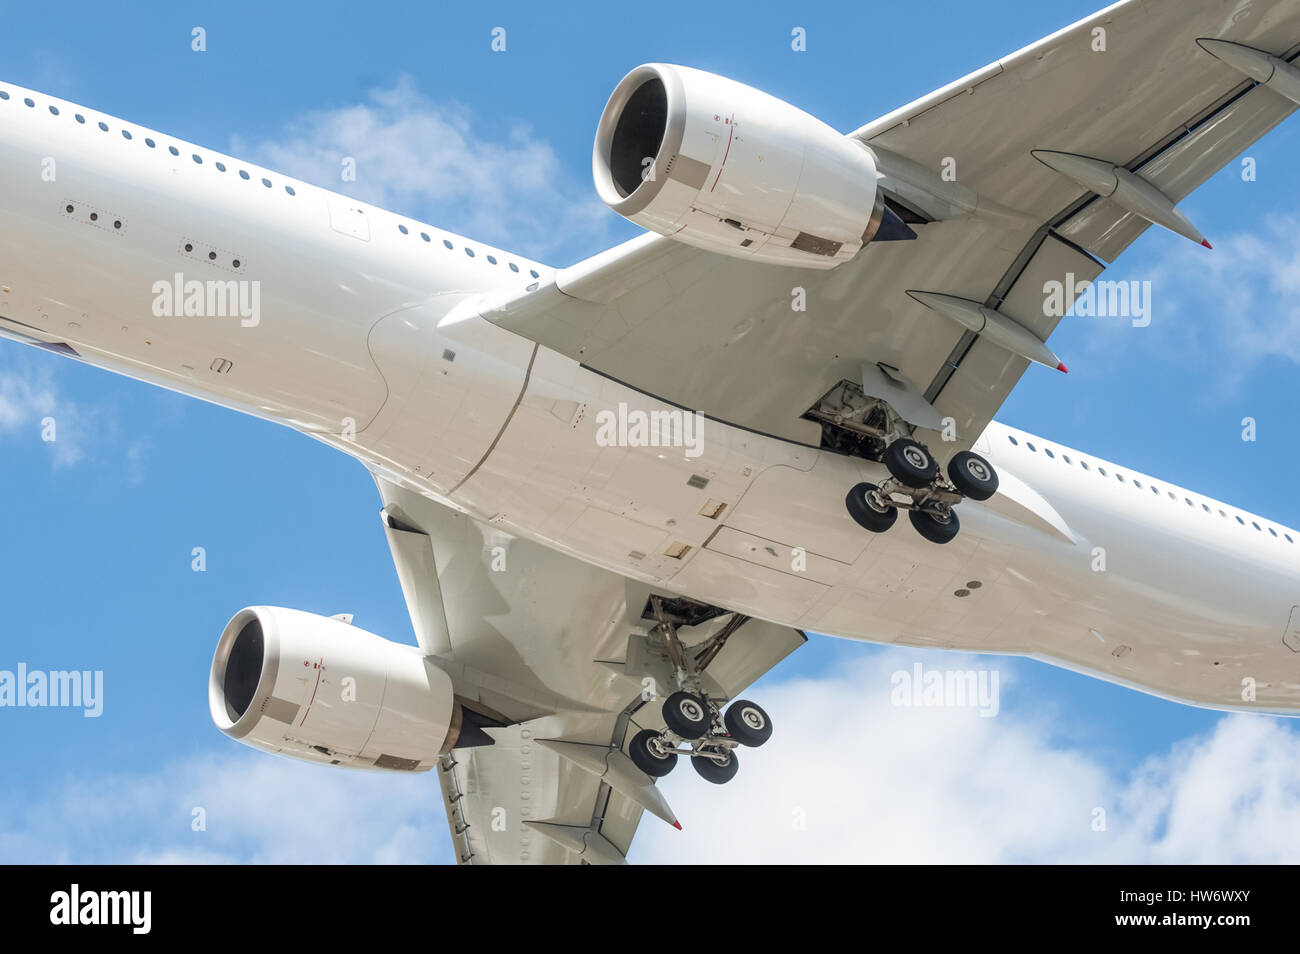 closeup of a large passenger aircraft undercarriage - no visible trademarks - Stock Image